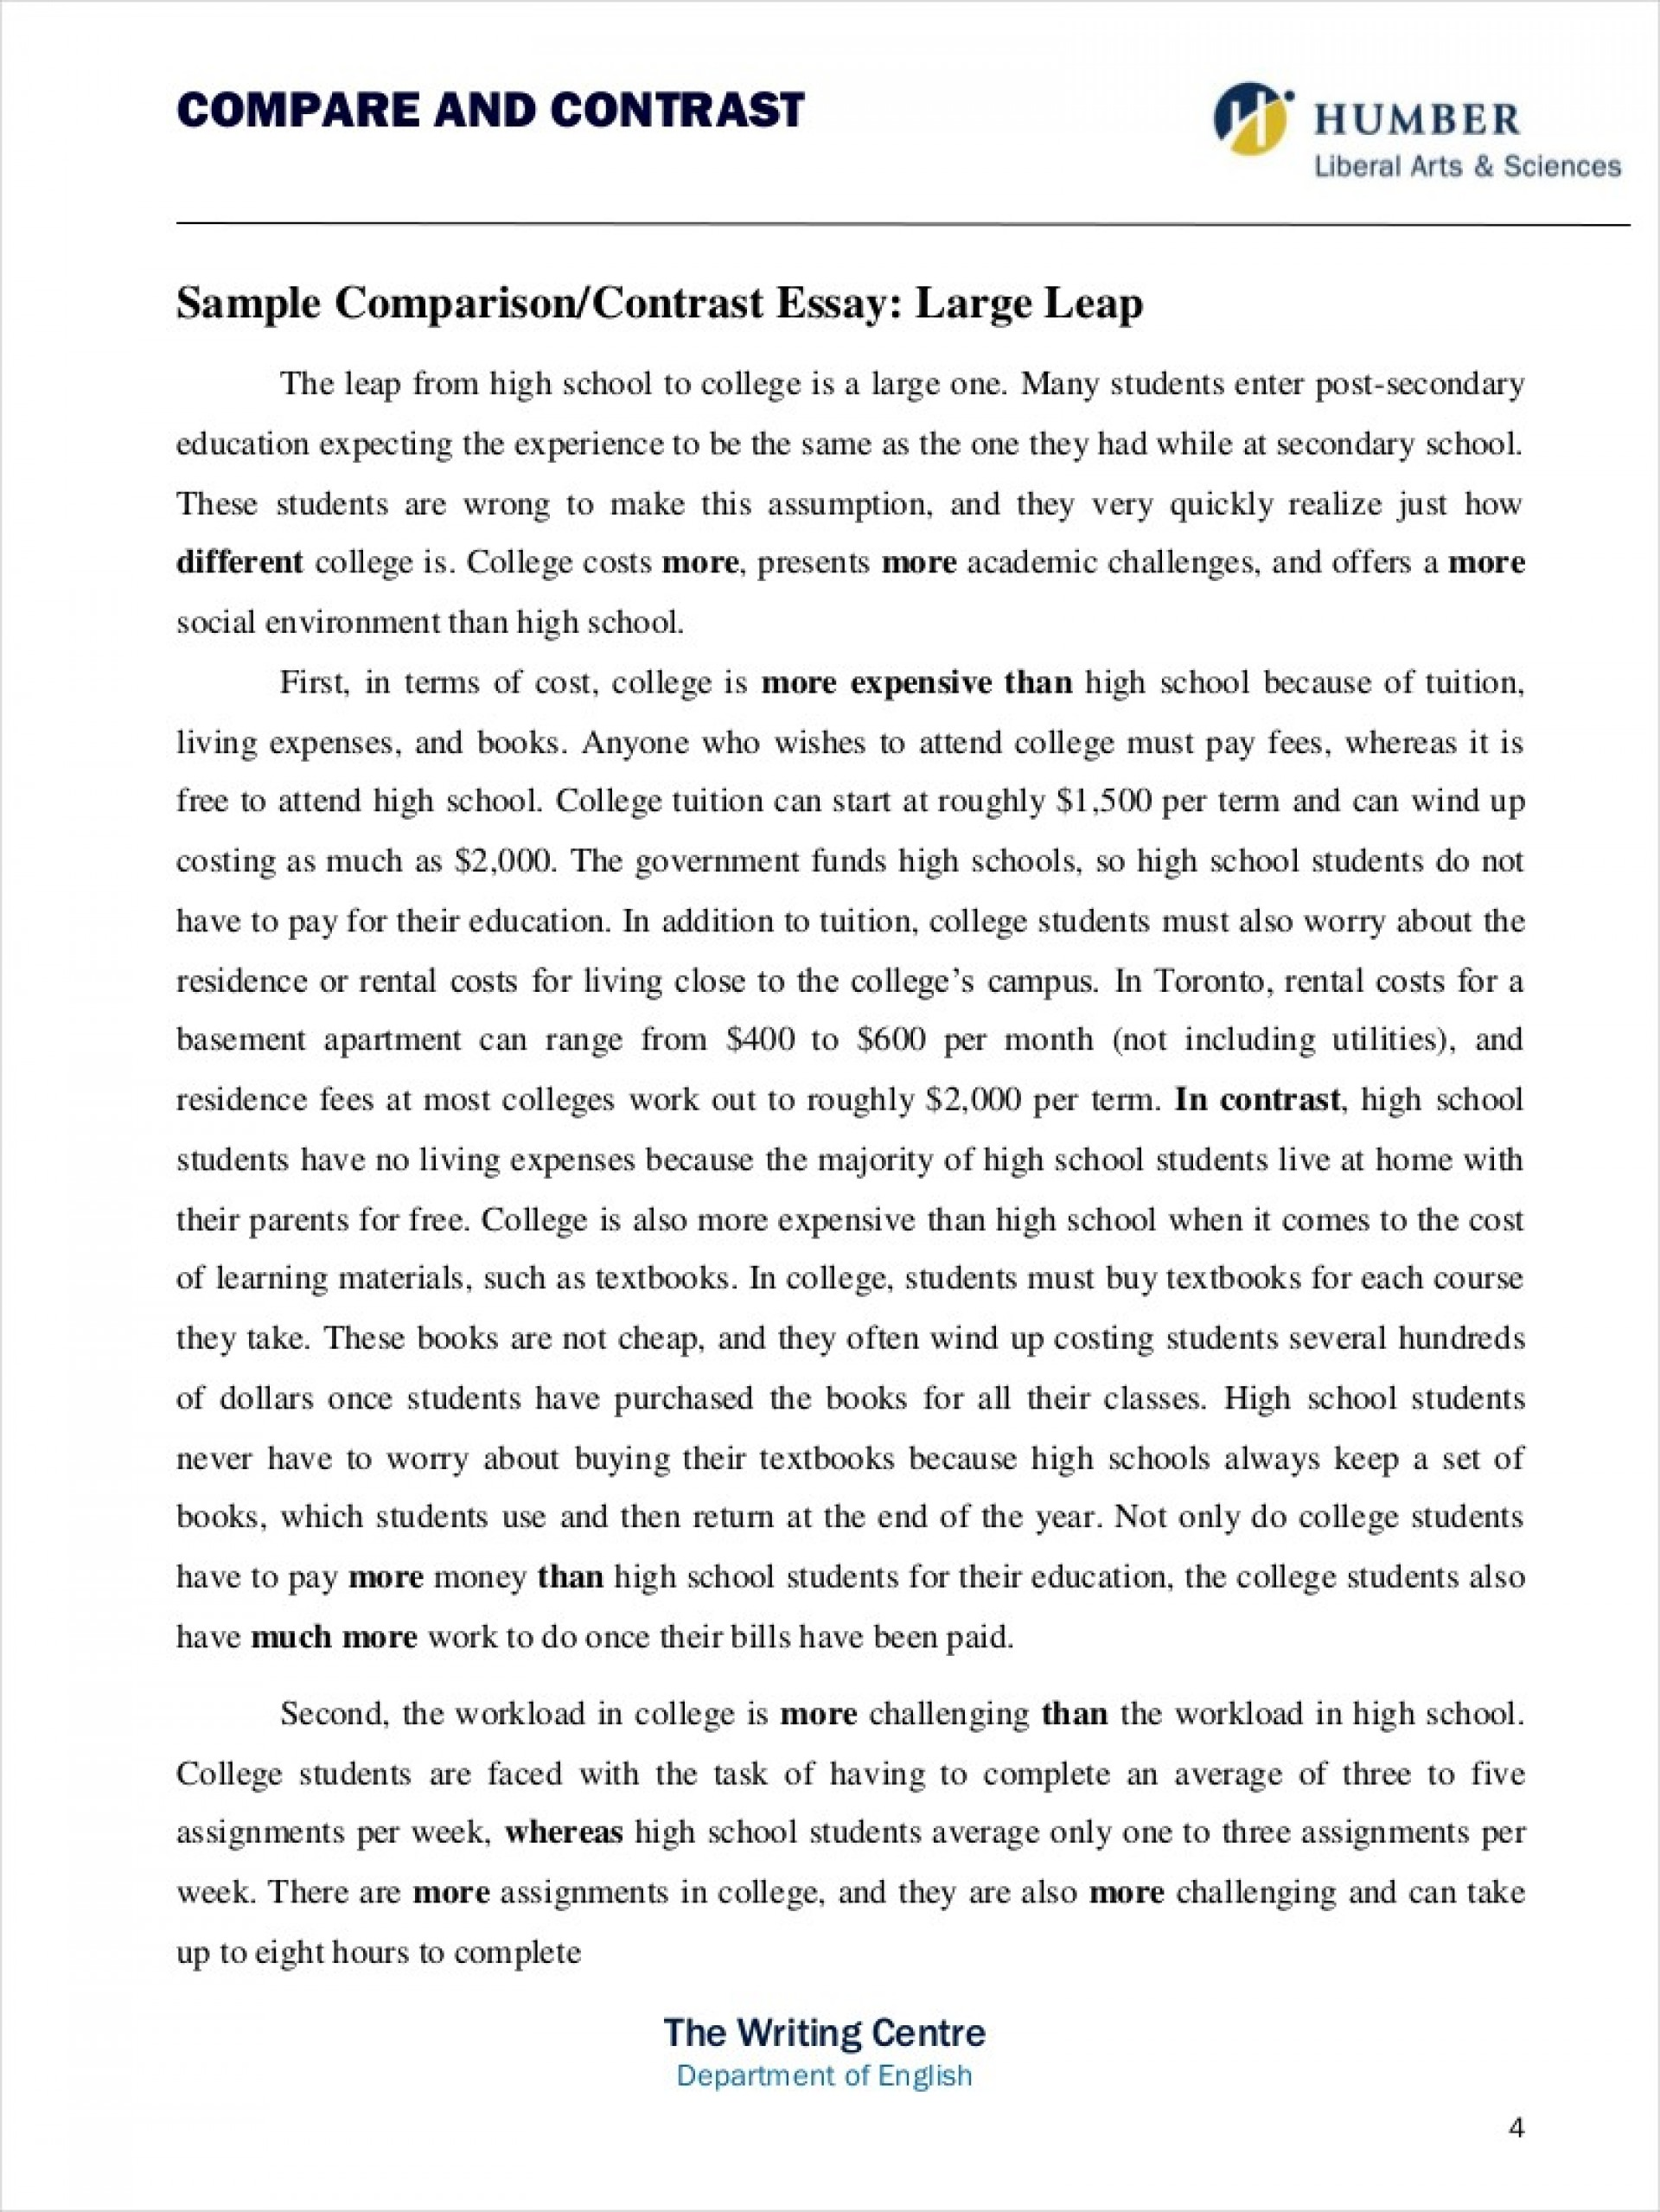 007 Example Of Compare And Contrast Essay Comparing Contrasting Comparative Samples Free Pdf Format Stunning In Apa Introduction Mla 1920